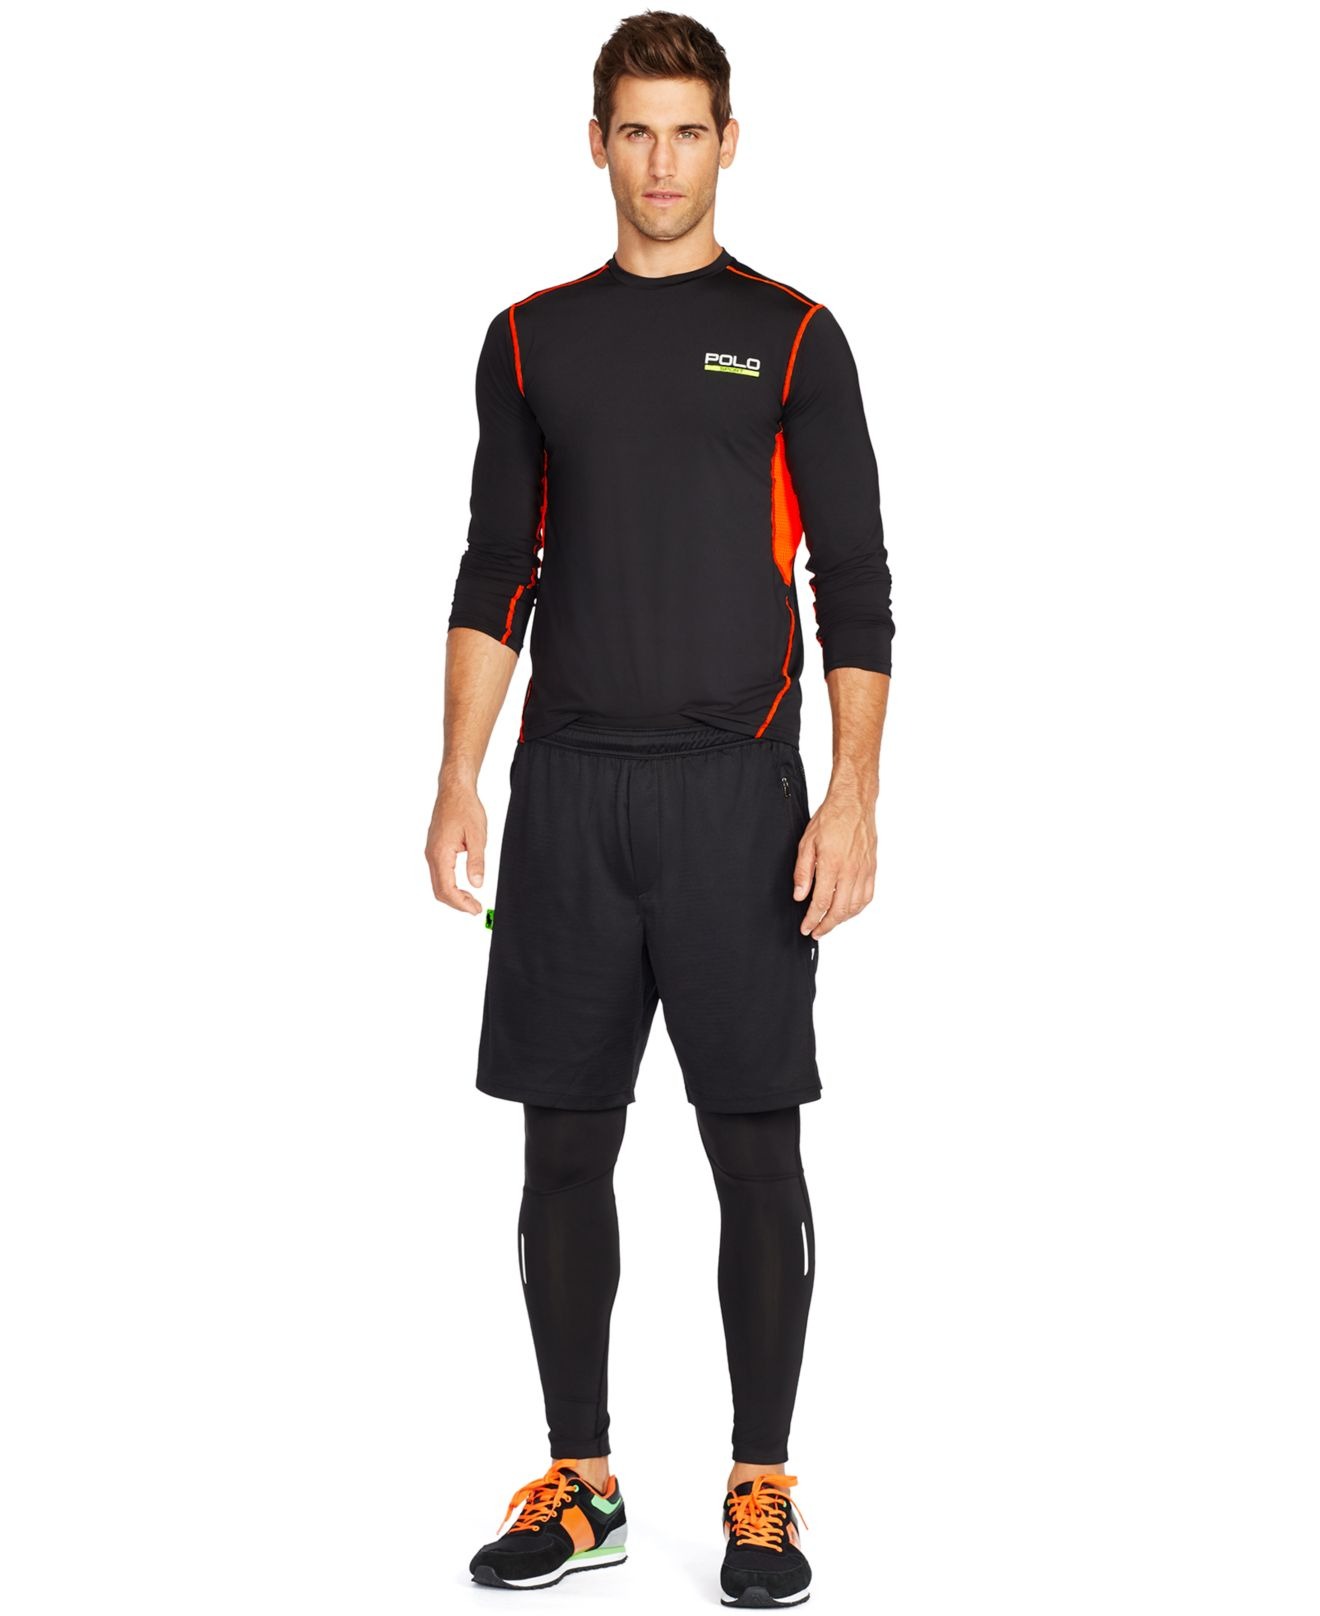 polo ralph lauren all sport compression training shirt in. Black Bedroom Furniture Sets. Home Design Ideas